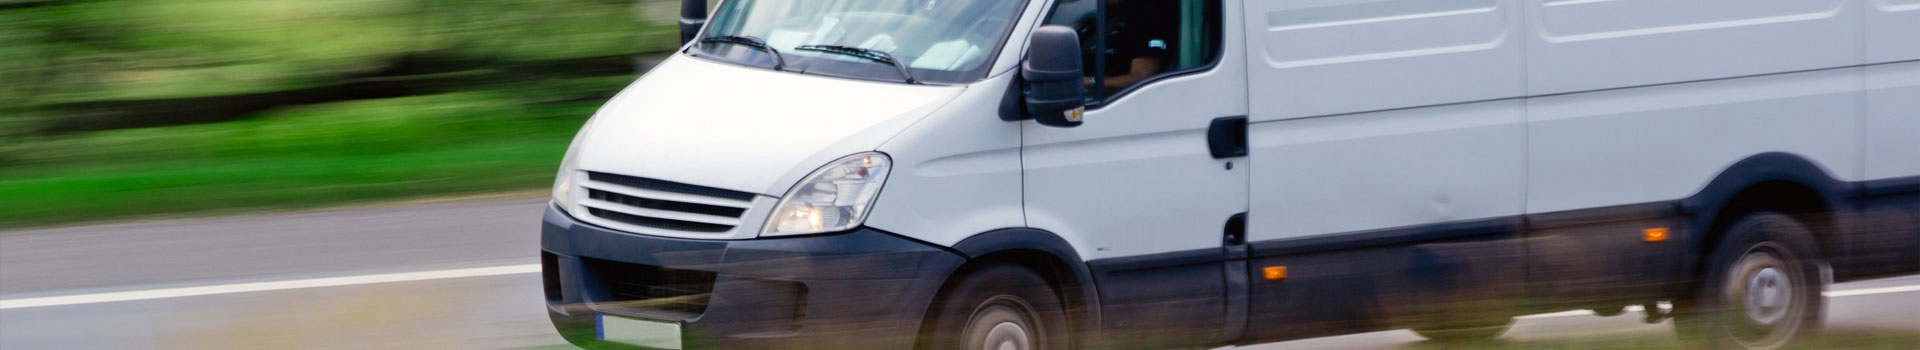 4a9393cf4e Regardless of whether you need private van insurance cover or business van  insurance cover